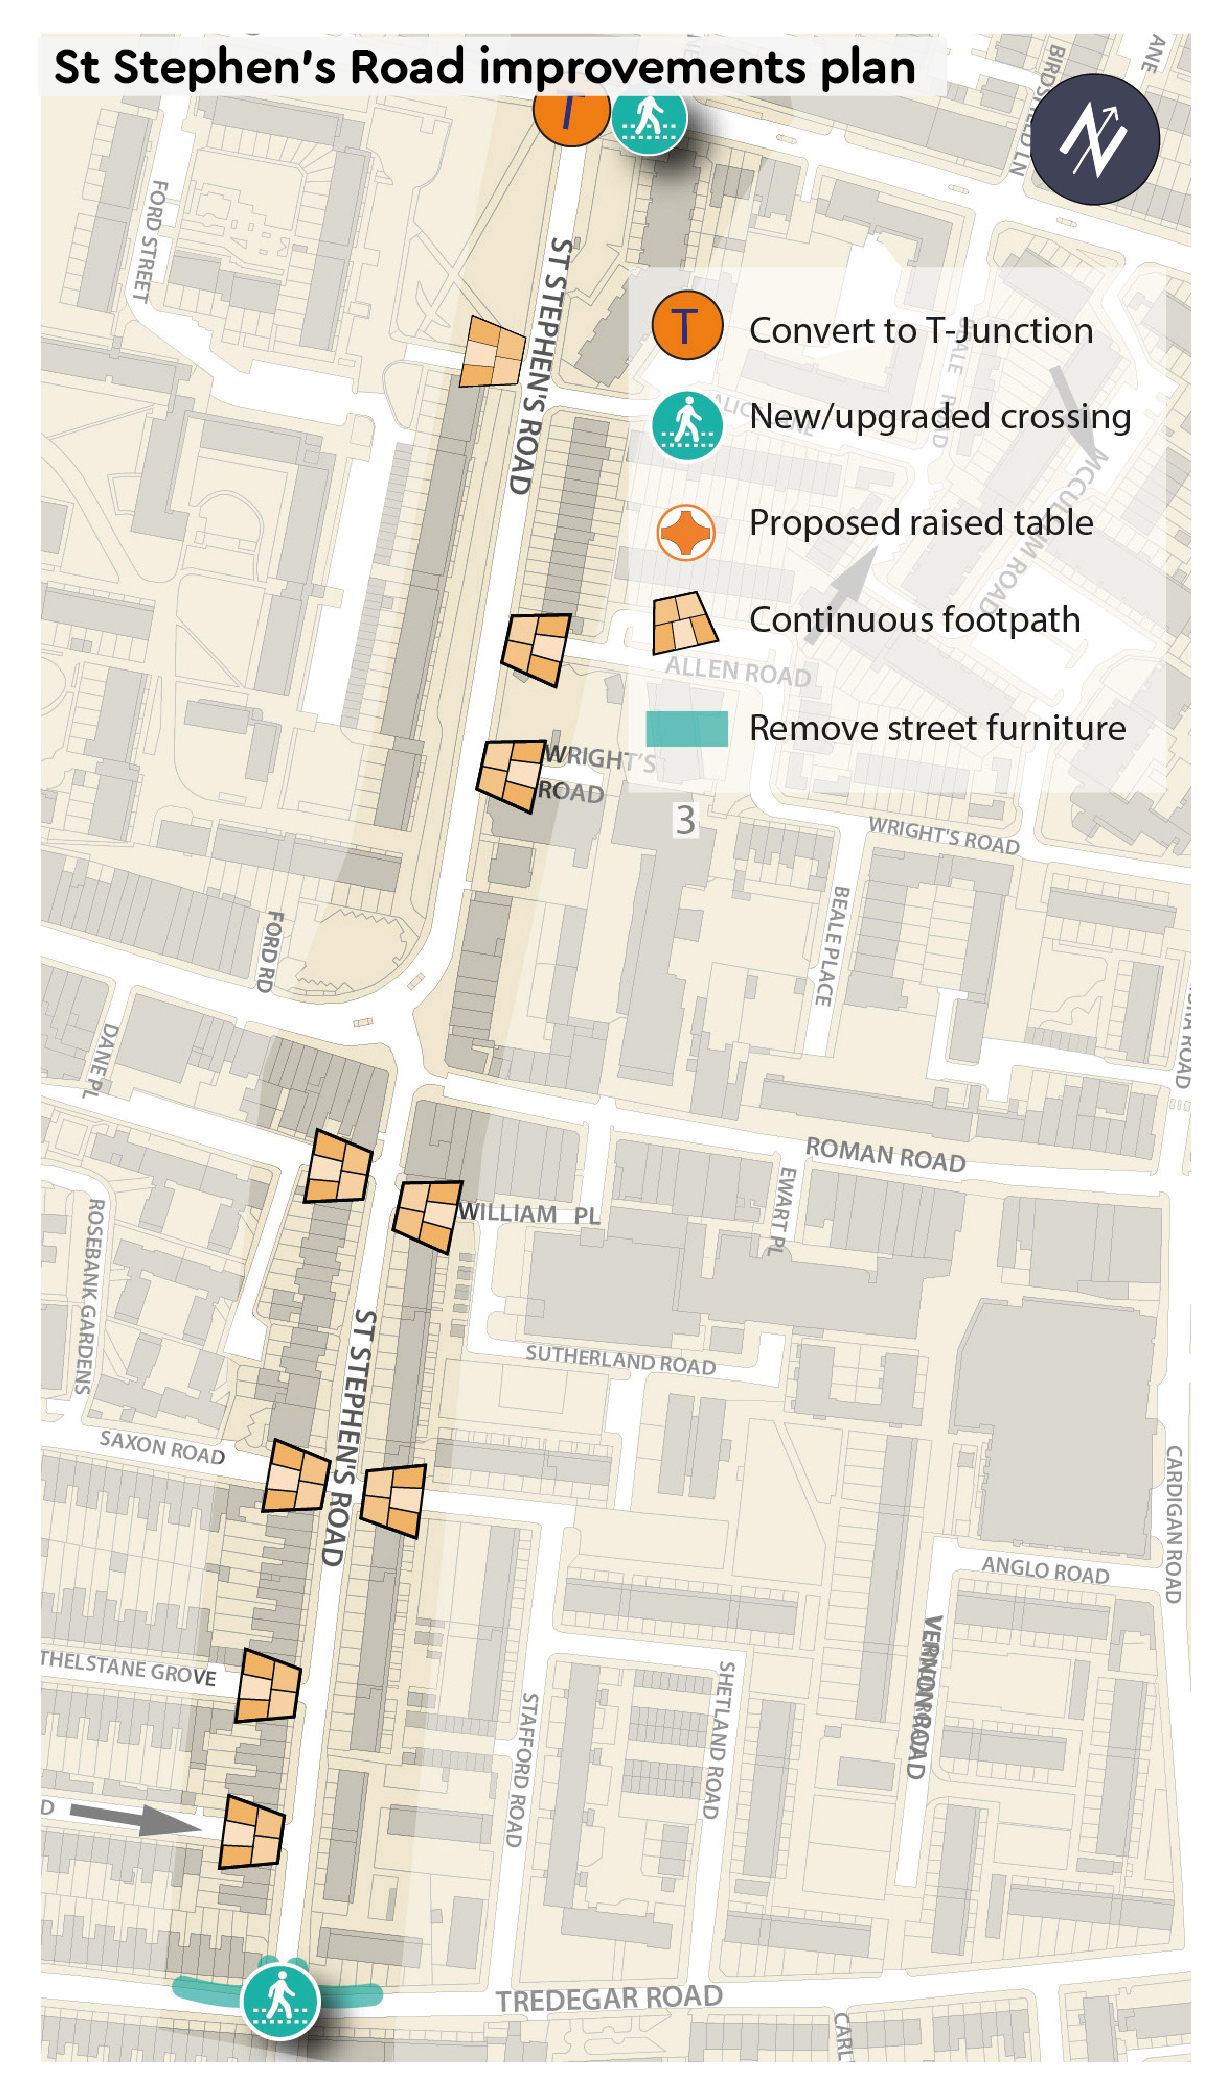 St Stephen's Road improvements plan - Continuous pavements along side streets from St Stephen's Road